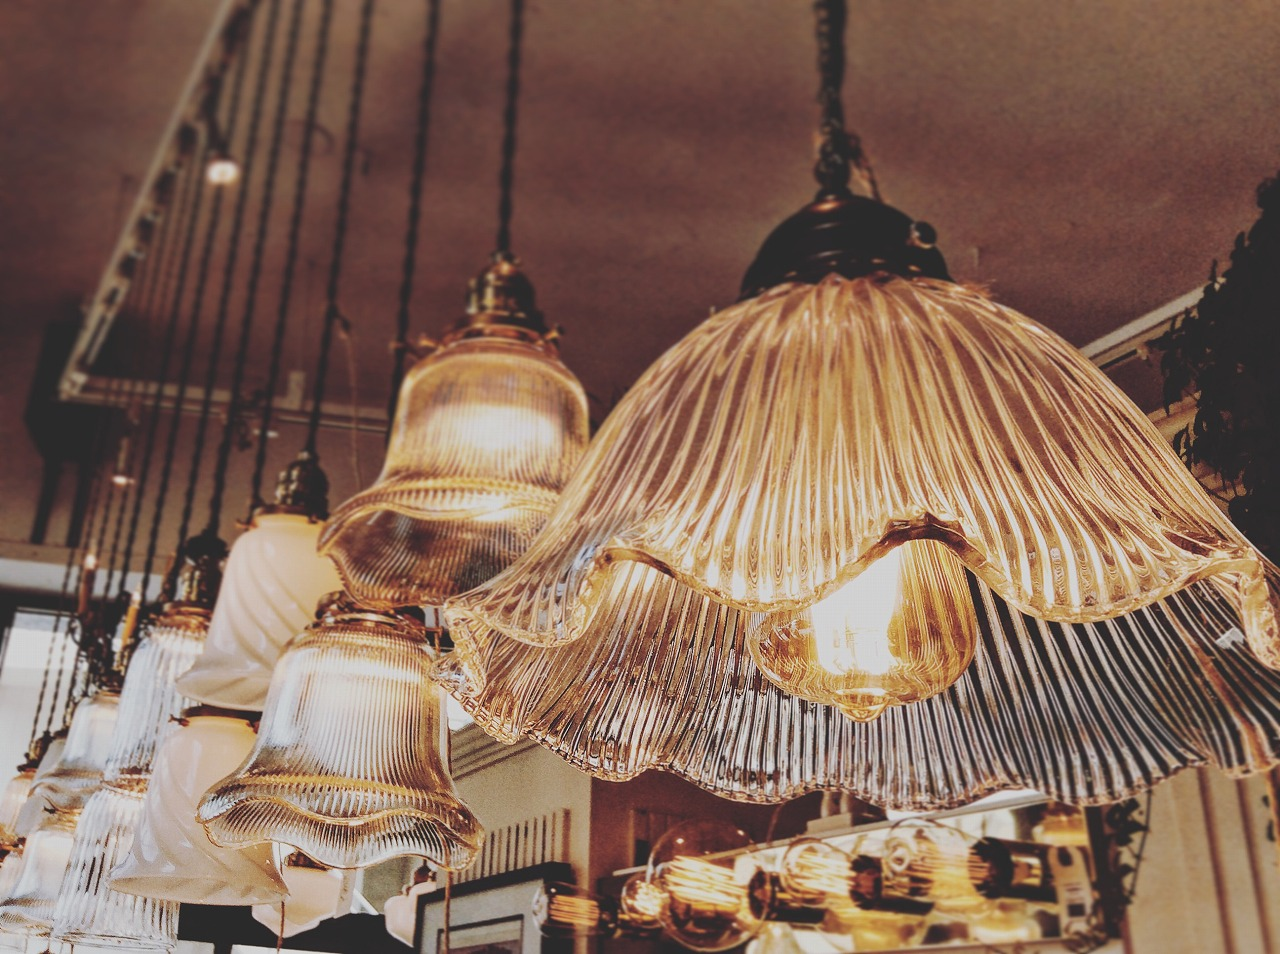 Small glass shade lamps.